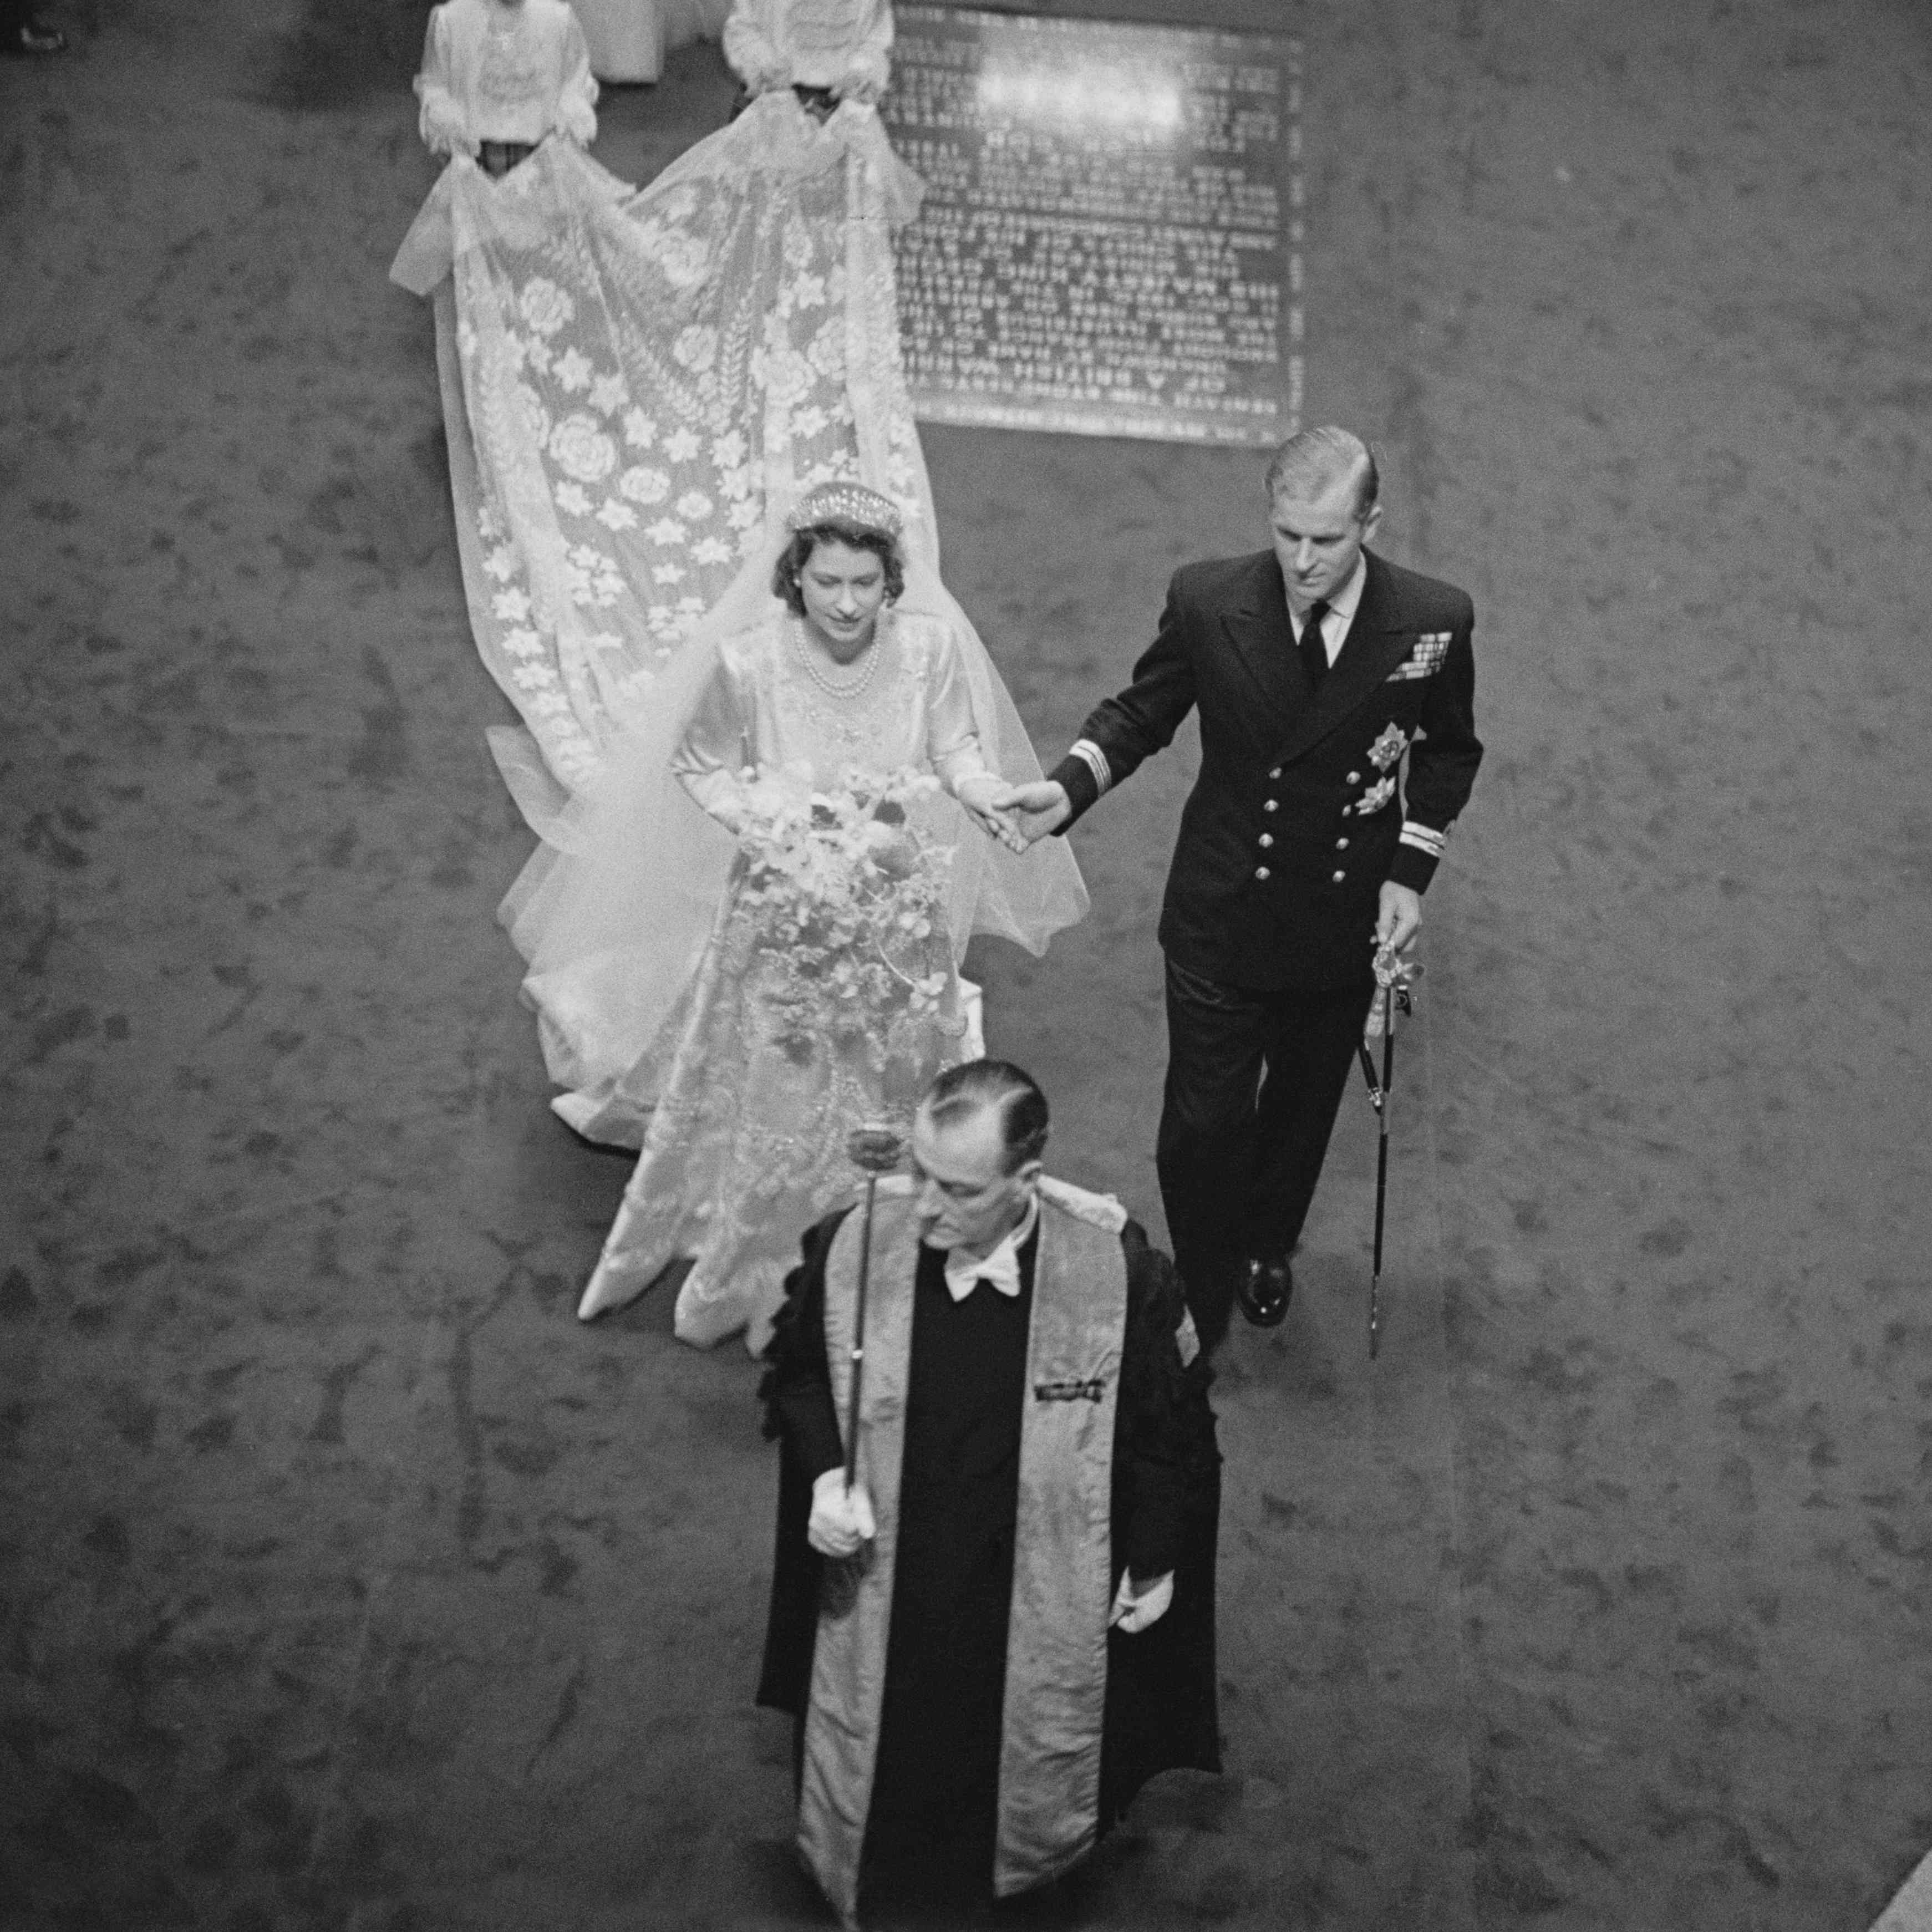 Princess Elizabeth and Prince Philip walk down the aisle of Westminster Abbey on their wedding day